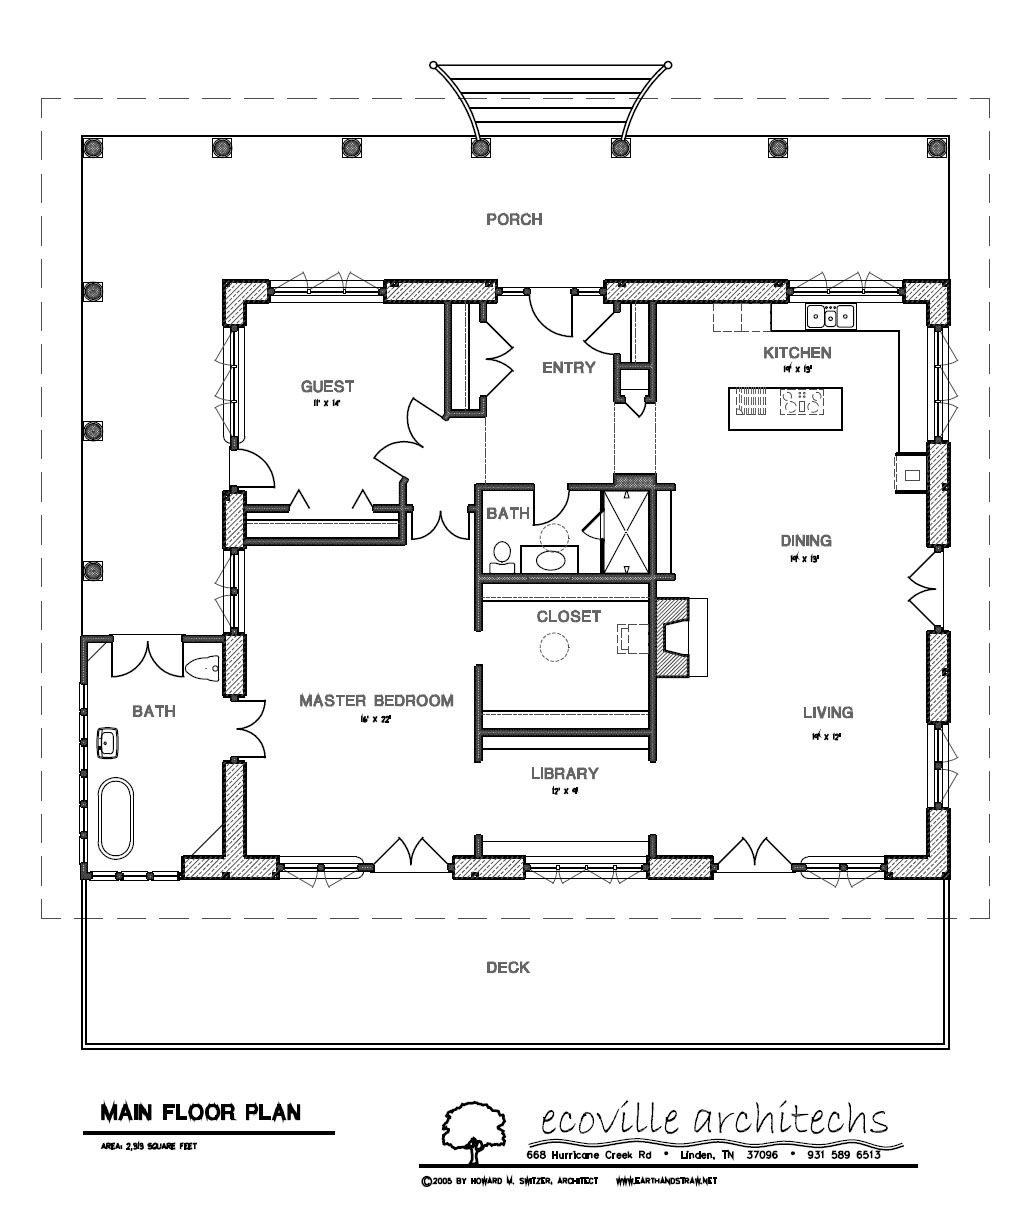 two bedroom house plans for small land: two bedroom house plans